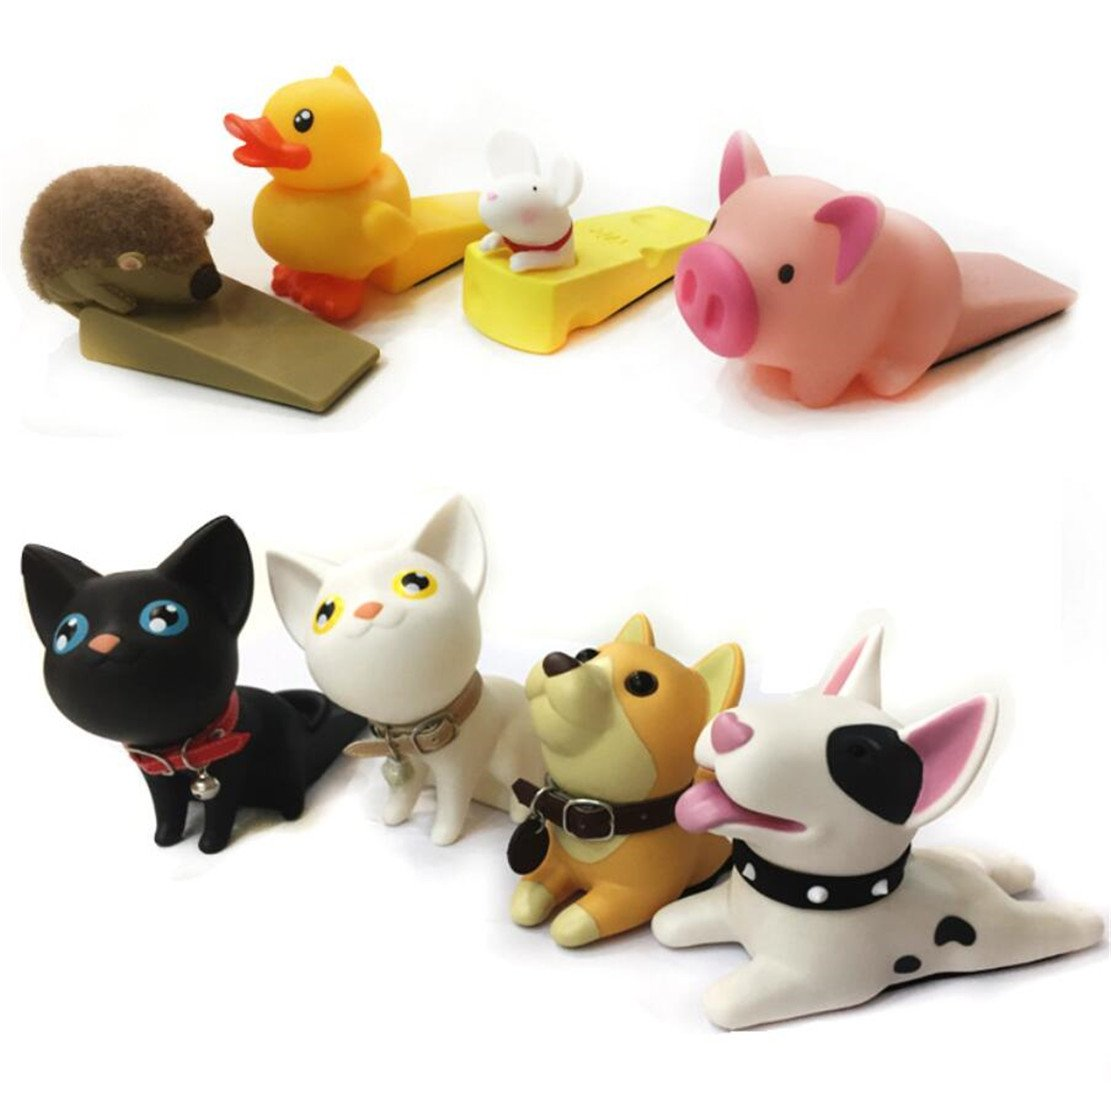 Cute Little Piggy Door Stopper Wedge Non-slip Non-scratching Baby Child Safety doorstop works on all floor surfaces (Plum Piggy) by Semikk (Image #3)